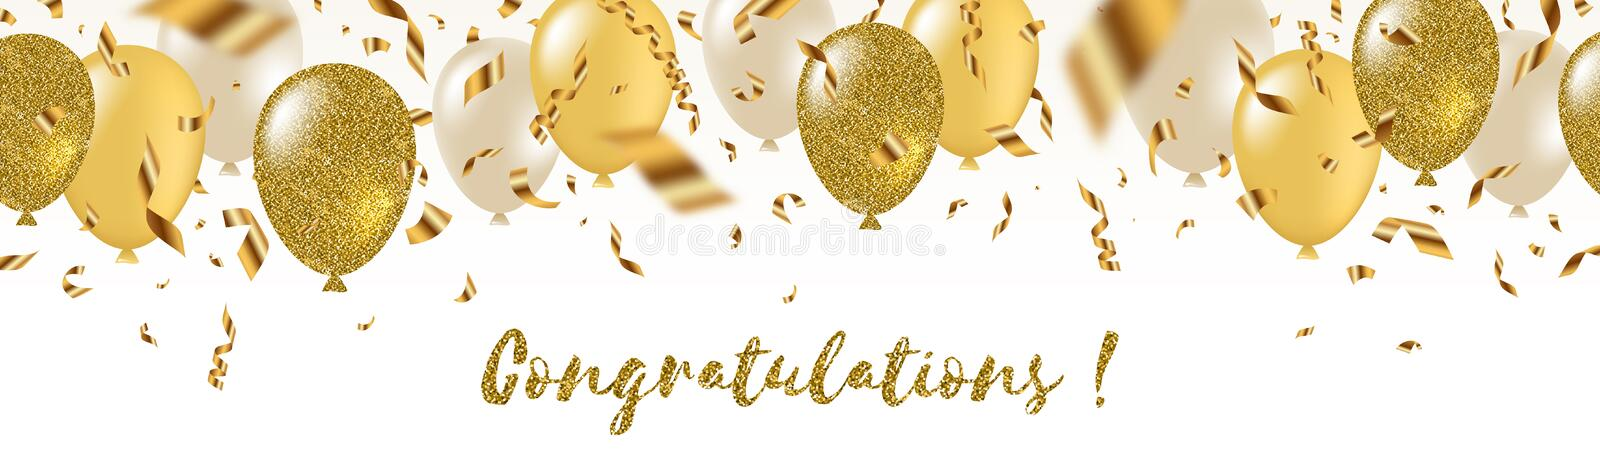 Congratulations - celebratory greeting banner - white, yellow, glitter gold balloons and golden foil confetti. vector illustration